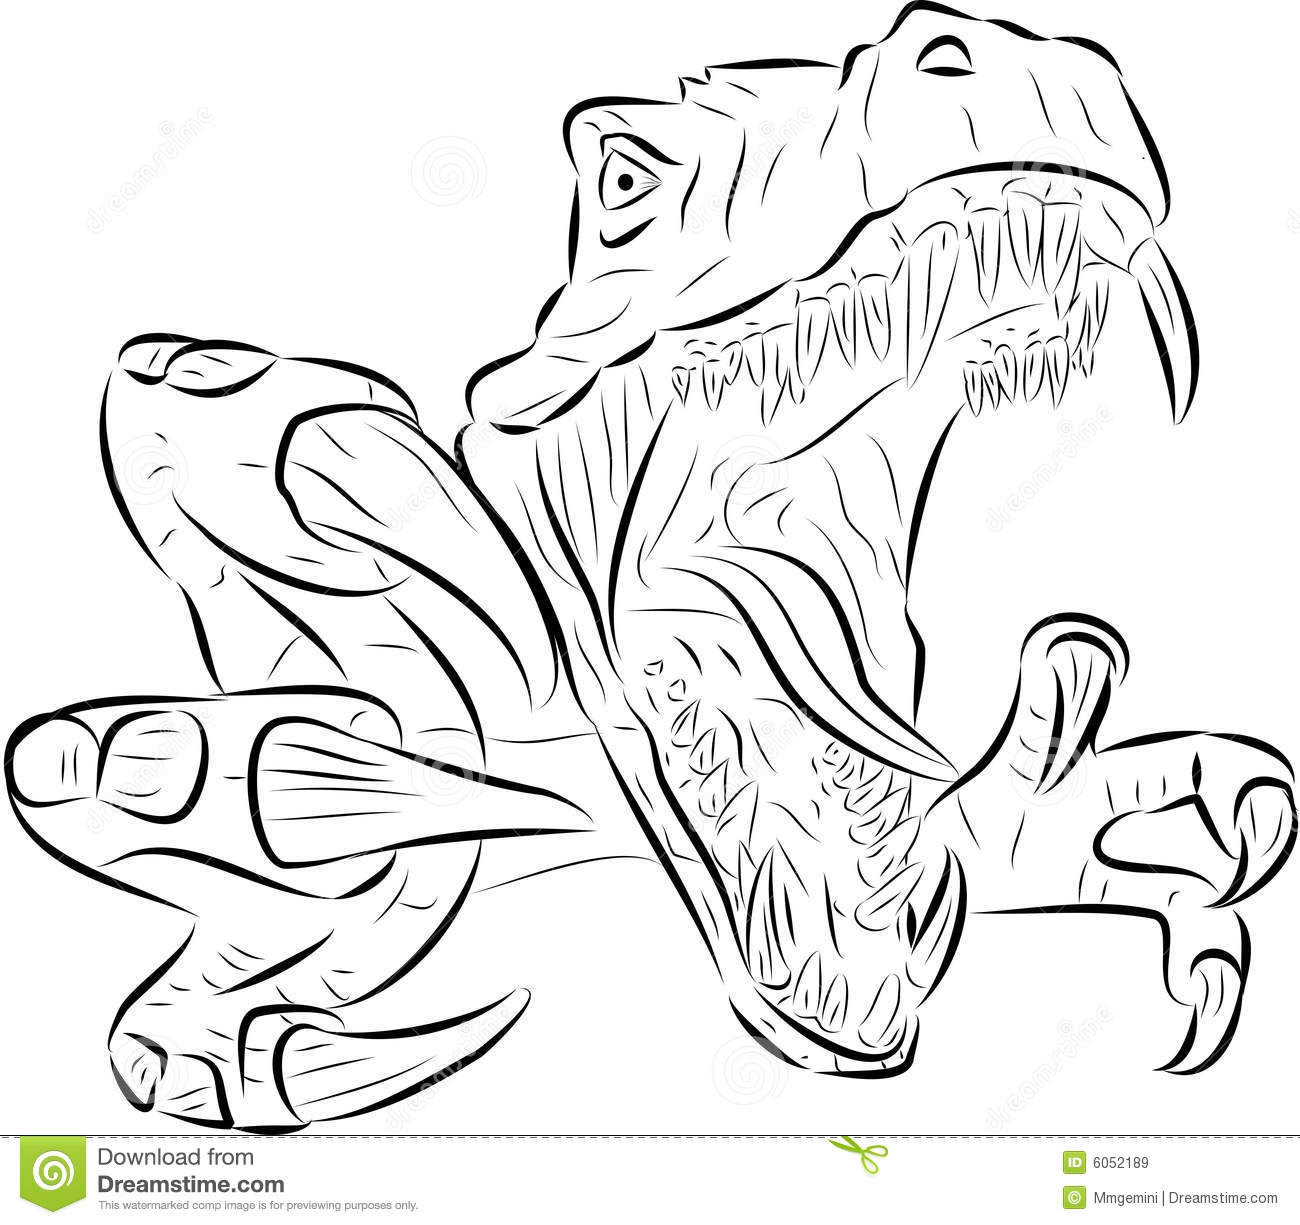 Free Dragon Coloring Pages further Jurassic Park Coloring Pages further Costumes additionally Printable Dinosaurs Coloring Pages Names moreover Royalty Free Stock Images T Rex Vector Image6052189. on scary dinosaur coloring